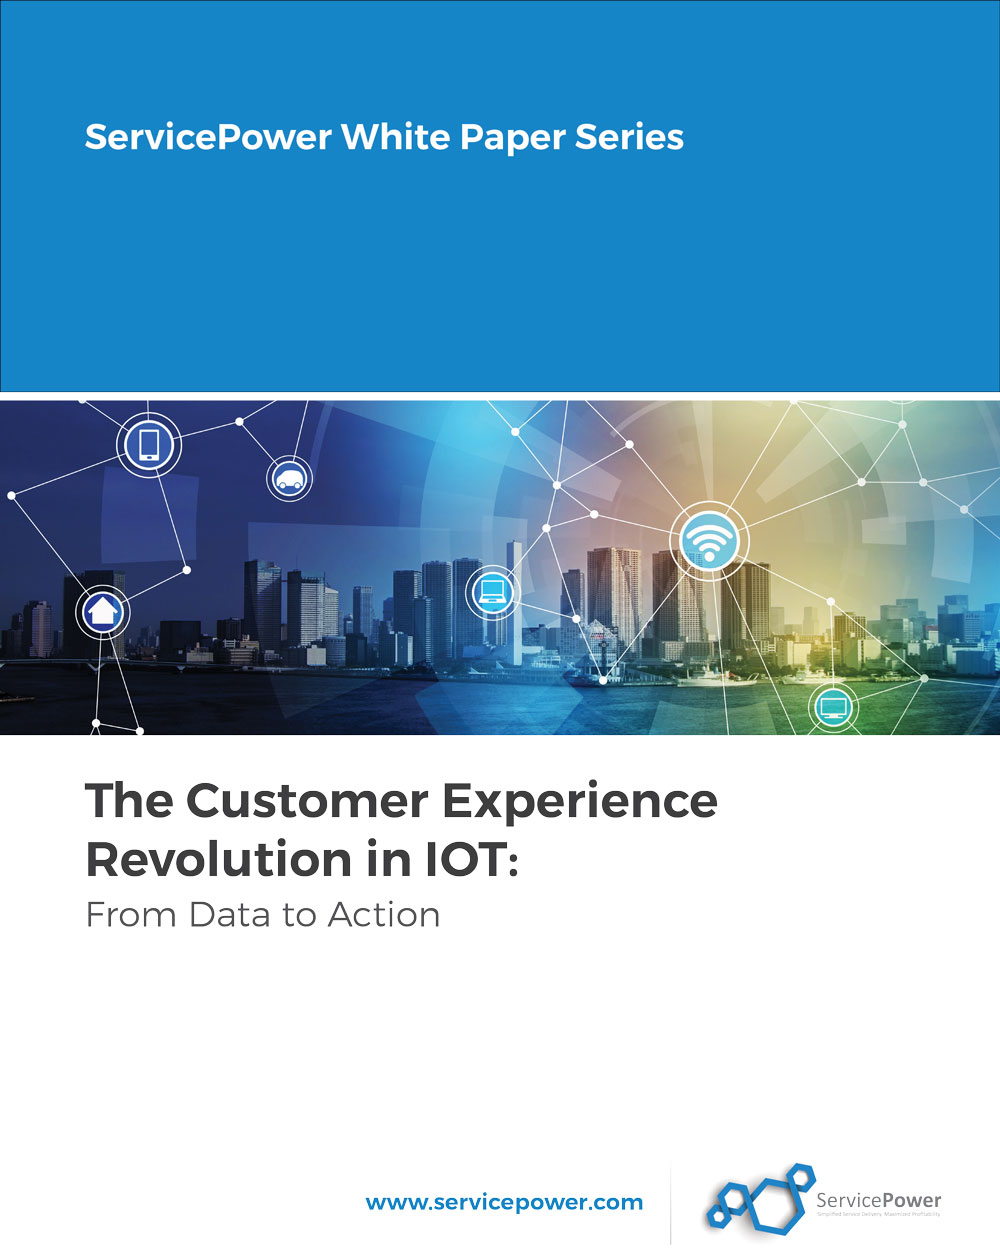 The Customer Experience Revolution in IOT: From Data to Action